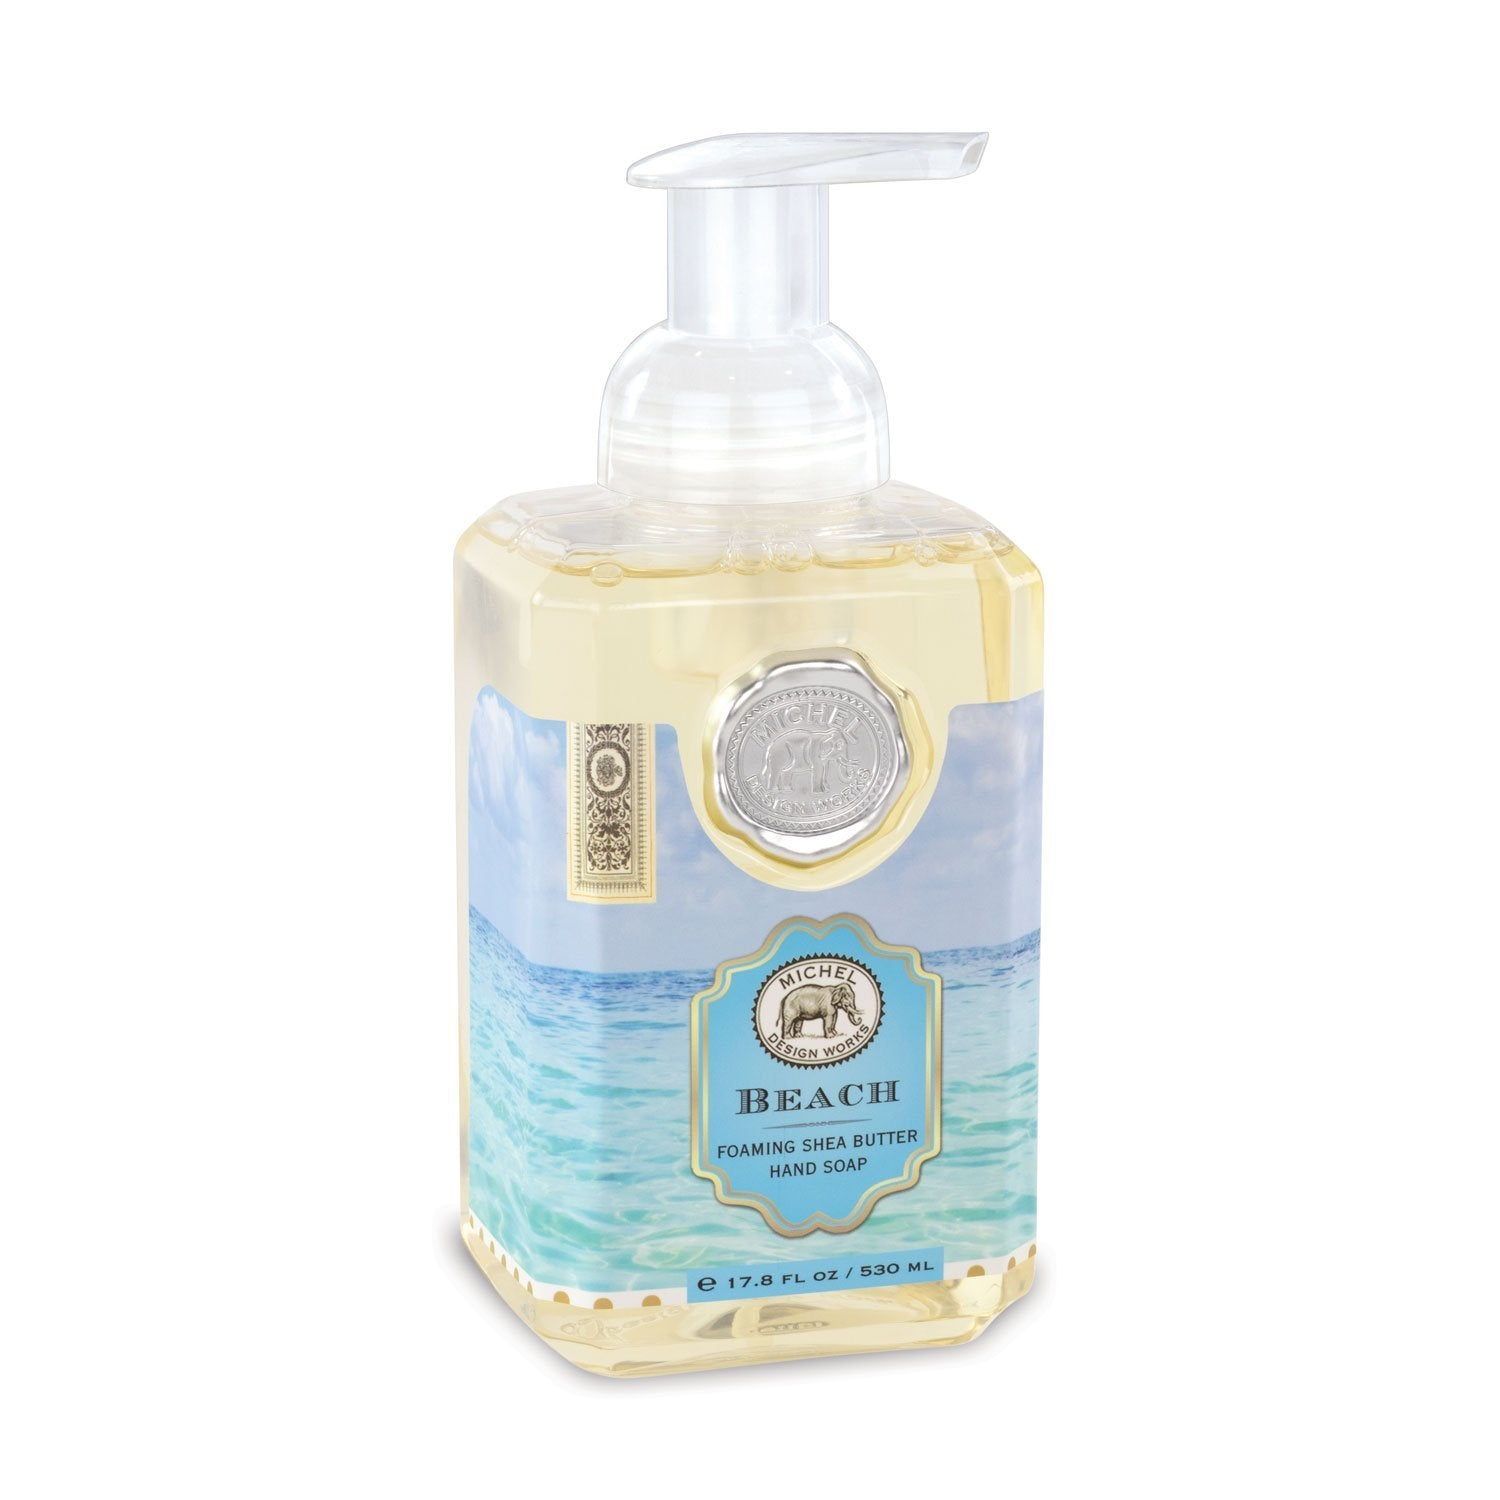 BEACH FOAMING HAND SOAP - Molly's! A Chic and Unique Boutique